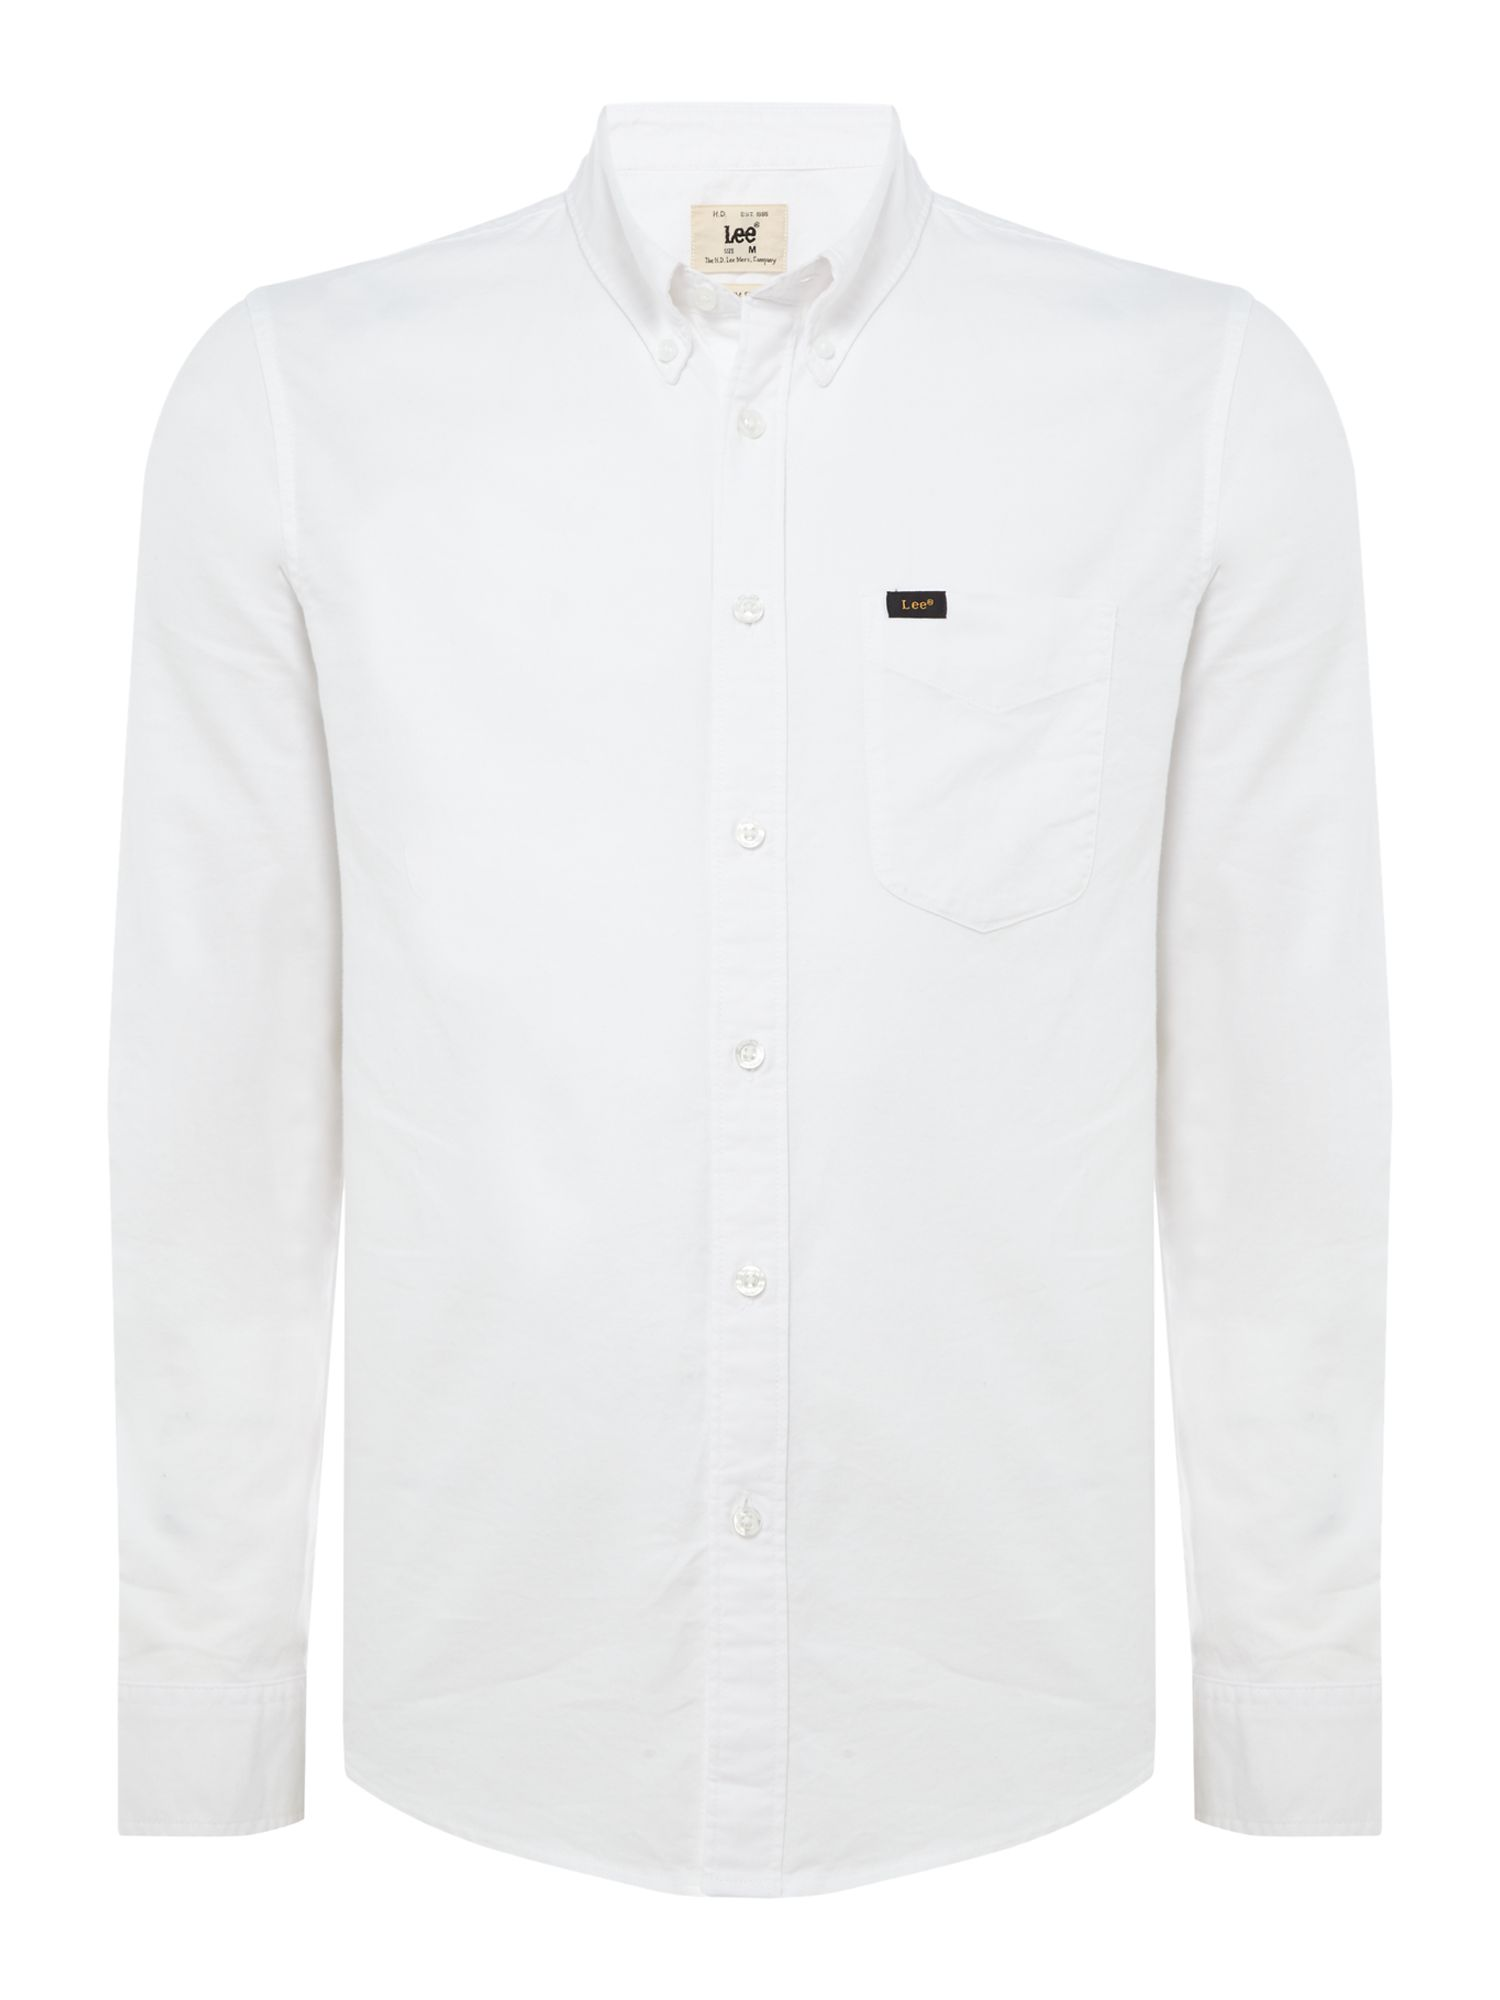 Mens Slim Fit Button Down Shirt, White